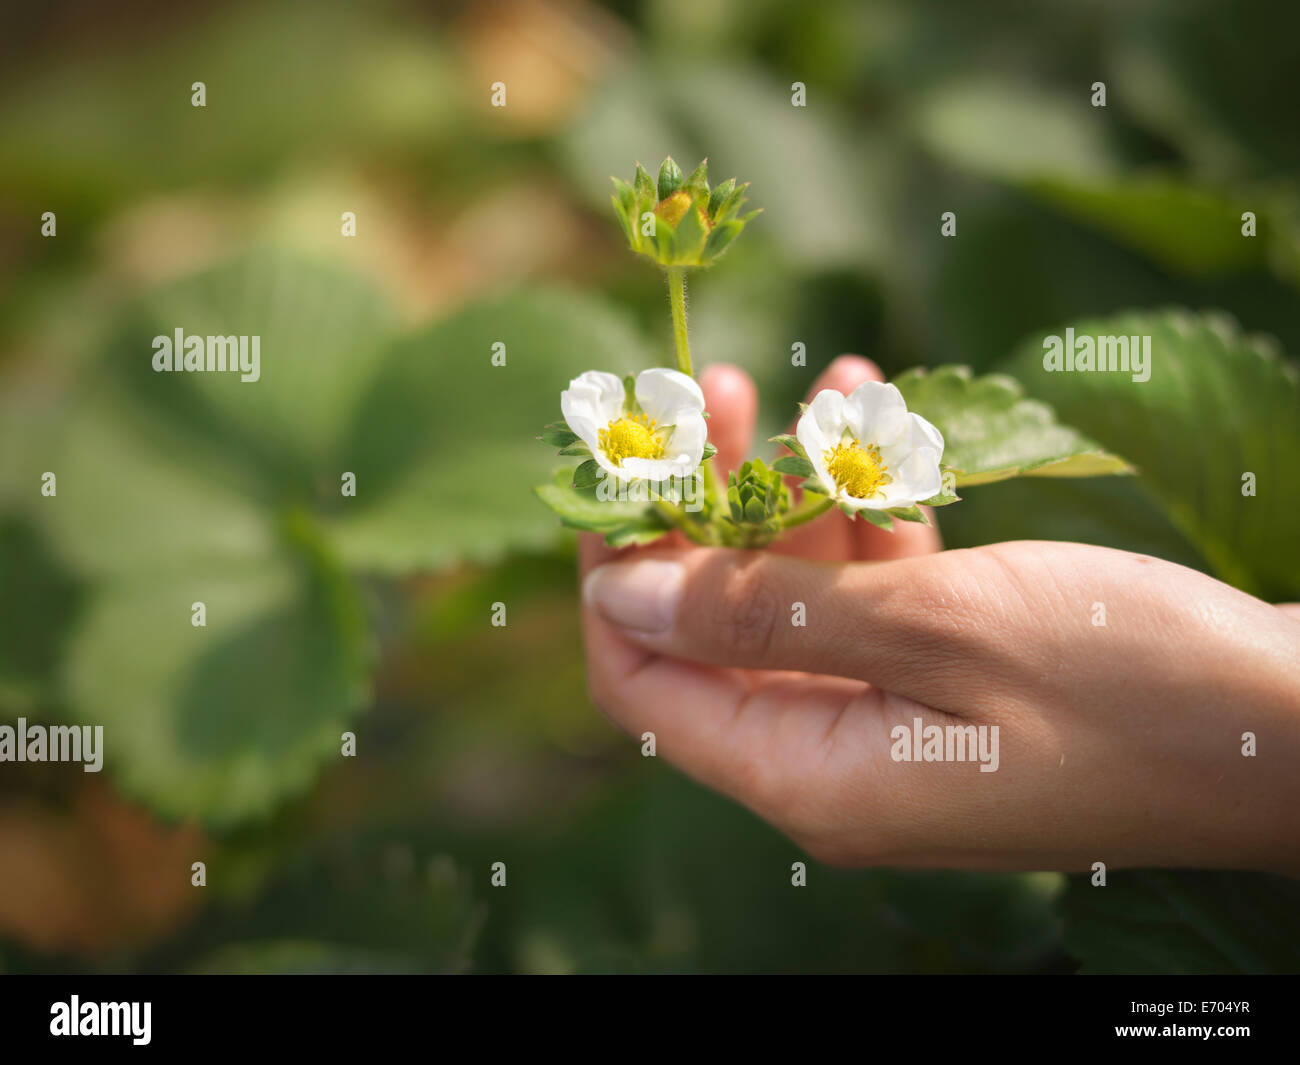 Close up of hands holding strawberry flowers in fruit farm Photo Stock